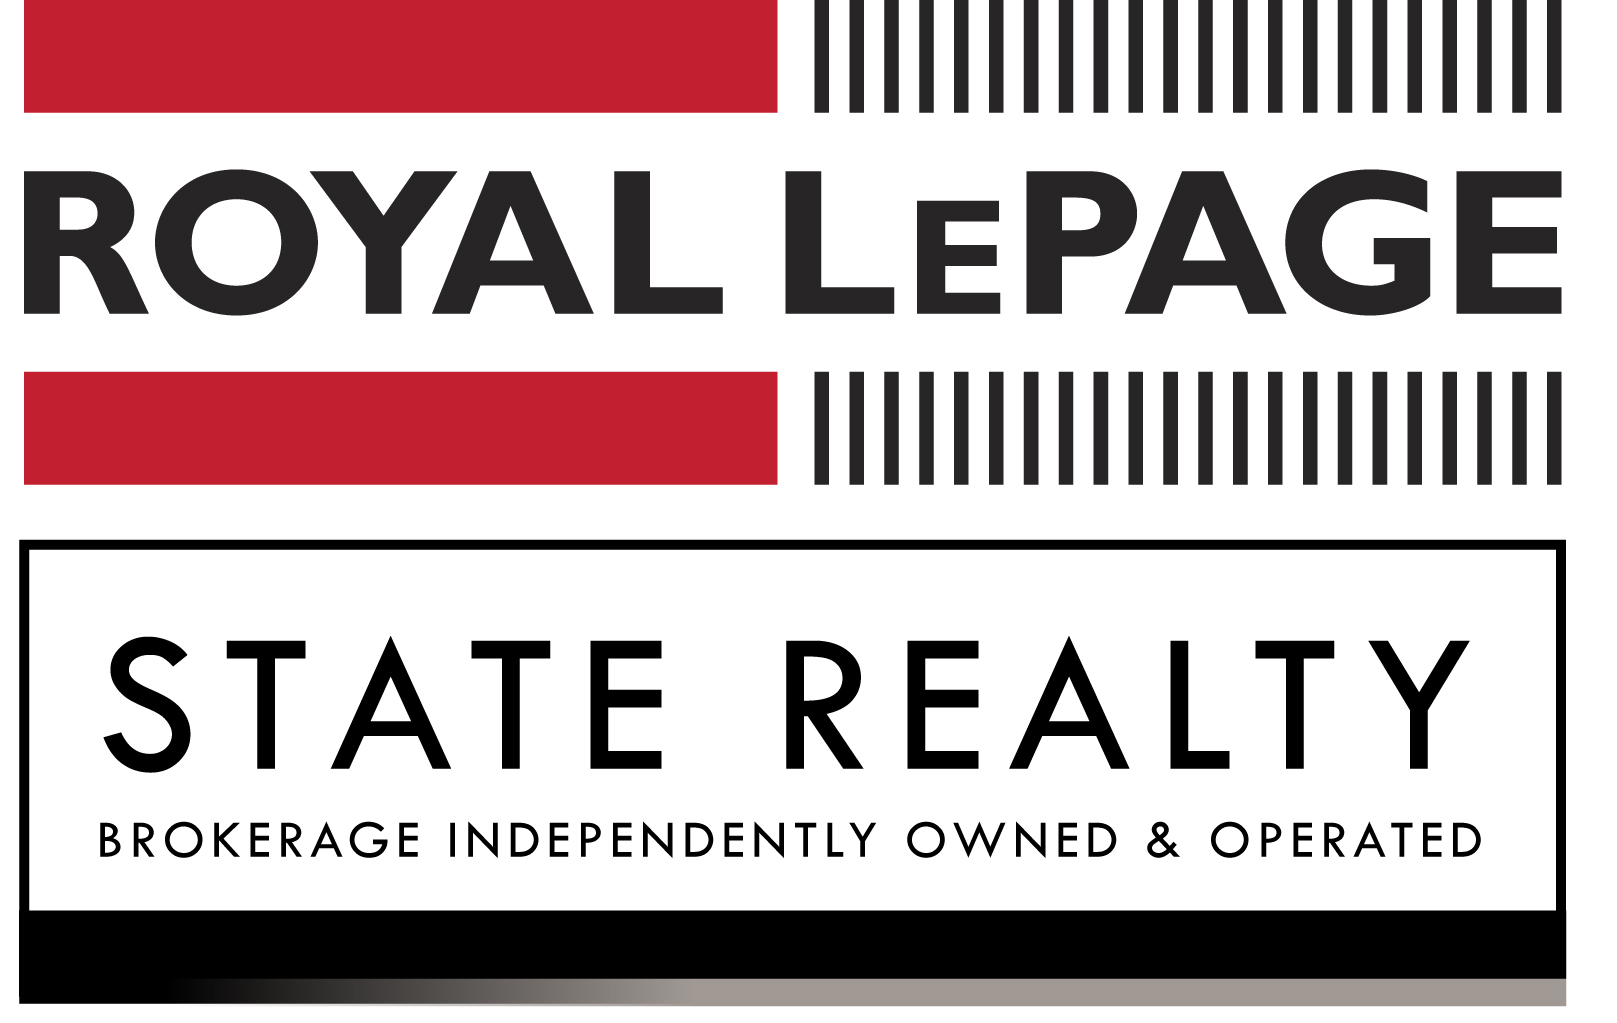 Bill Beattie, Royal LePage State Realty